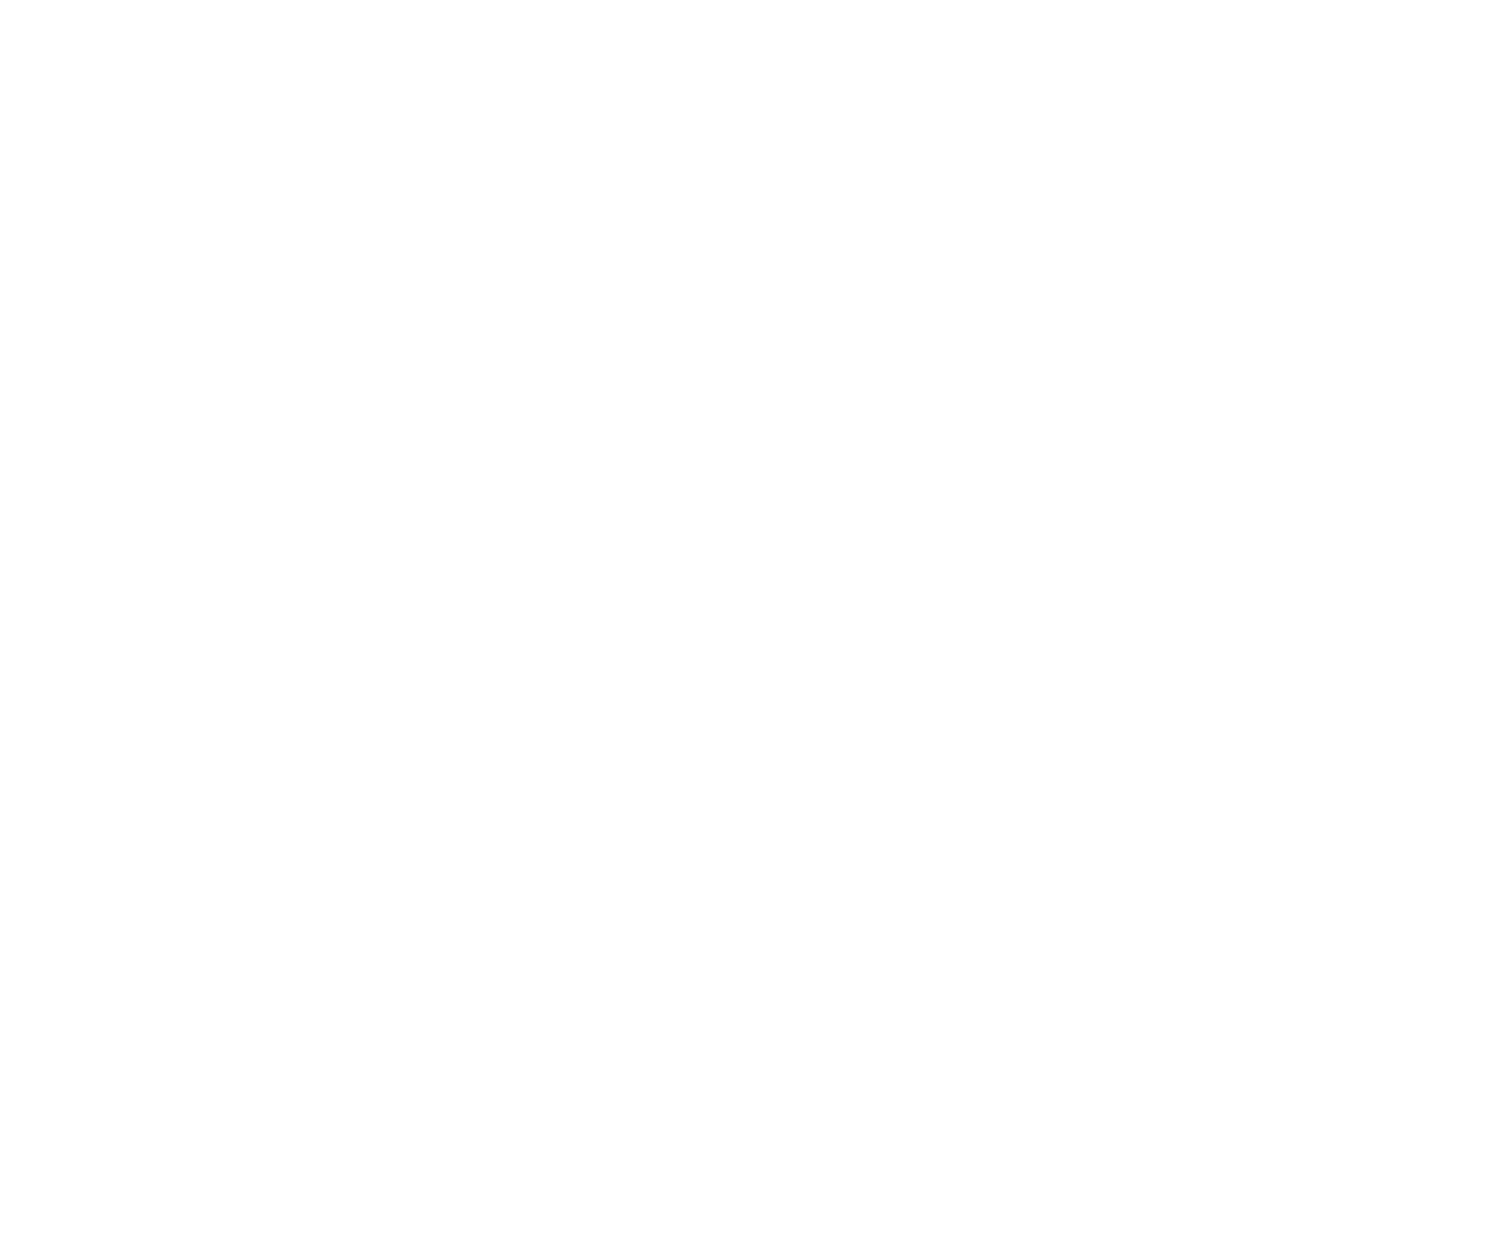 Victoria Point Tavern, Victoria Point, QLD